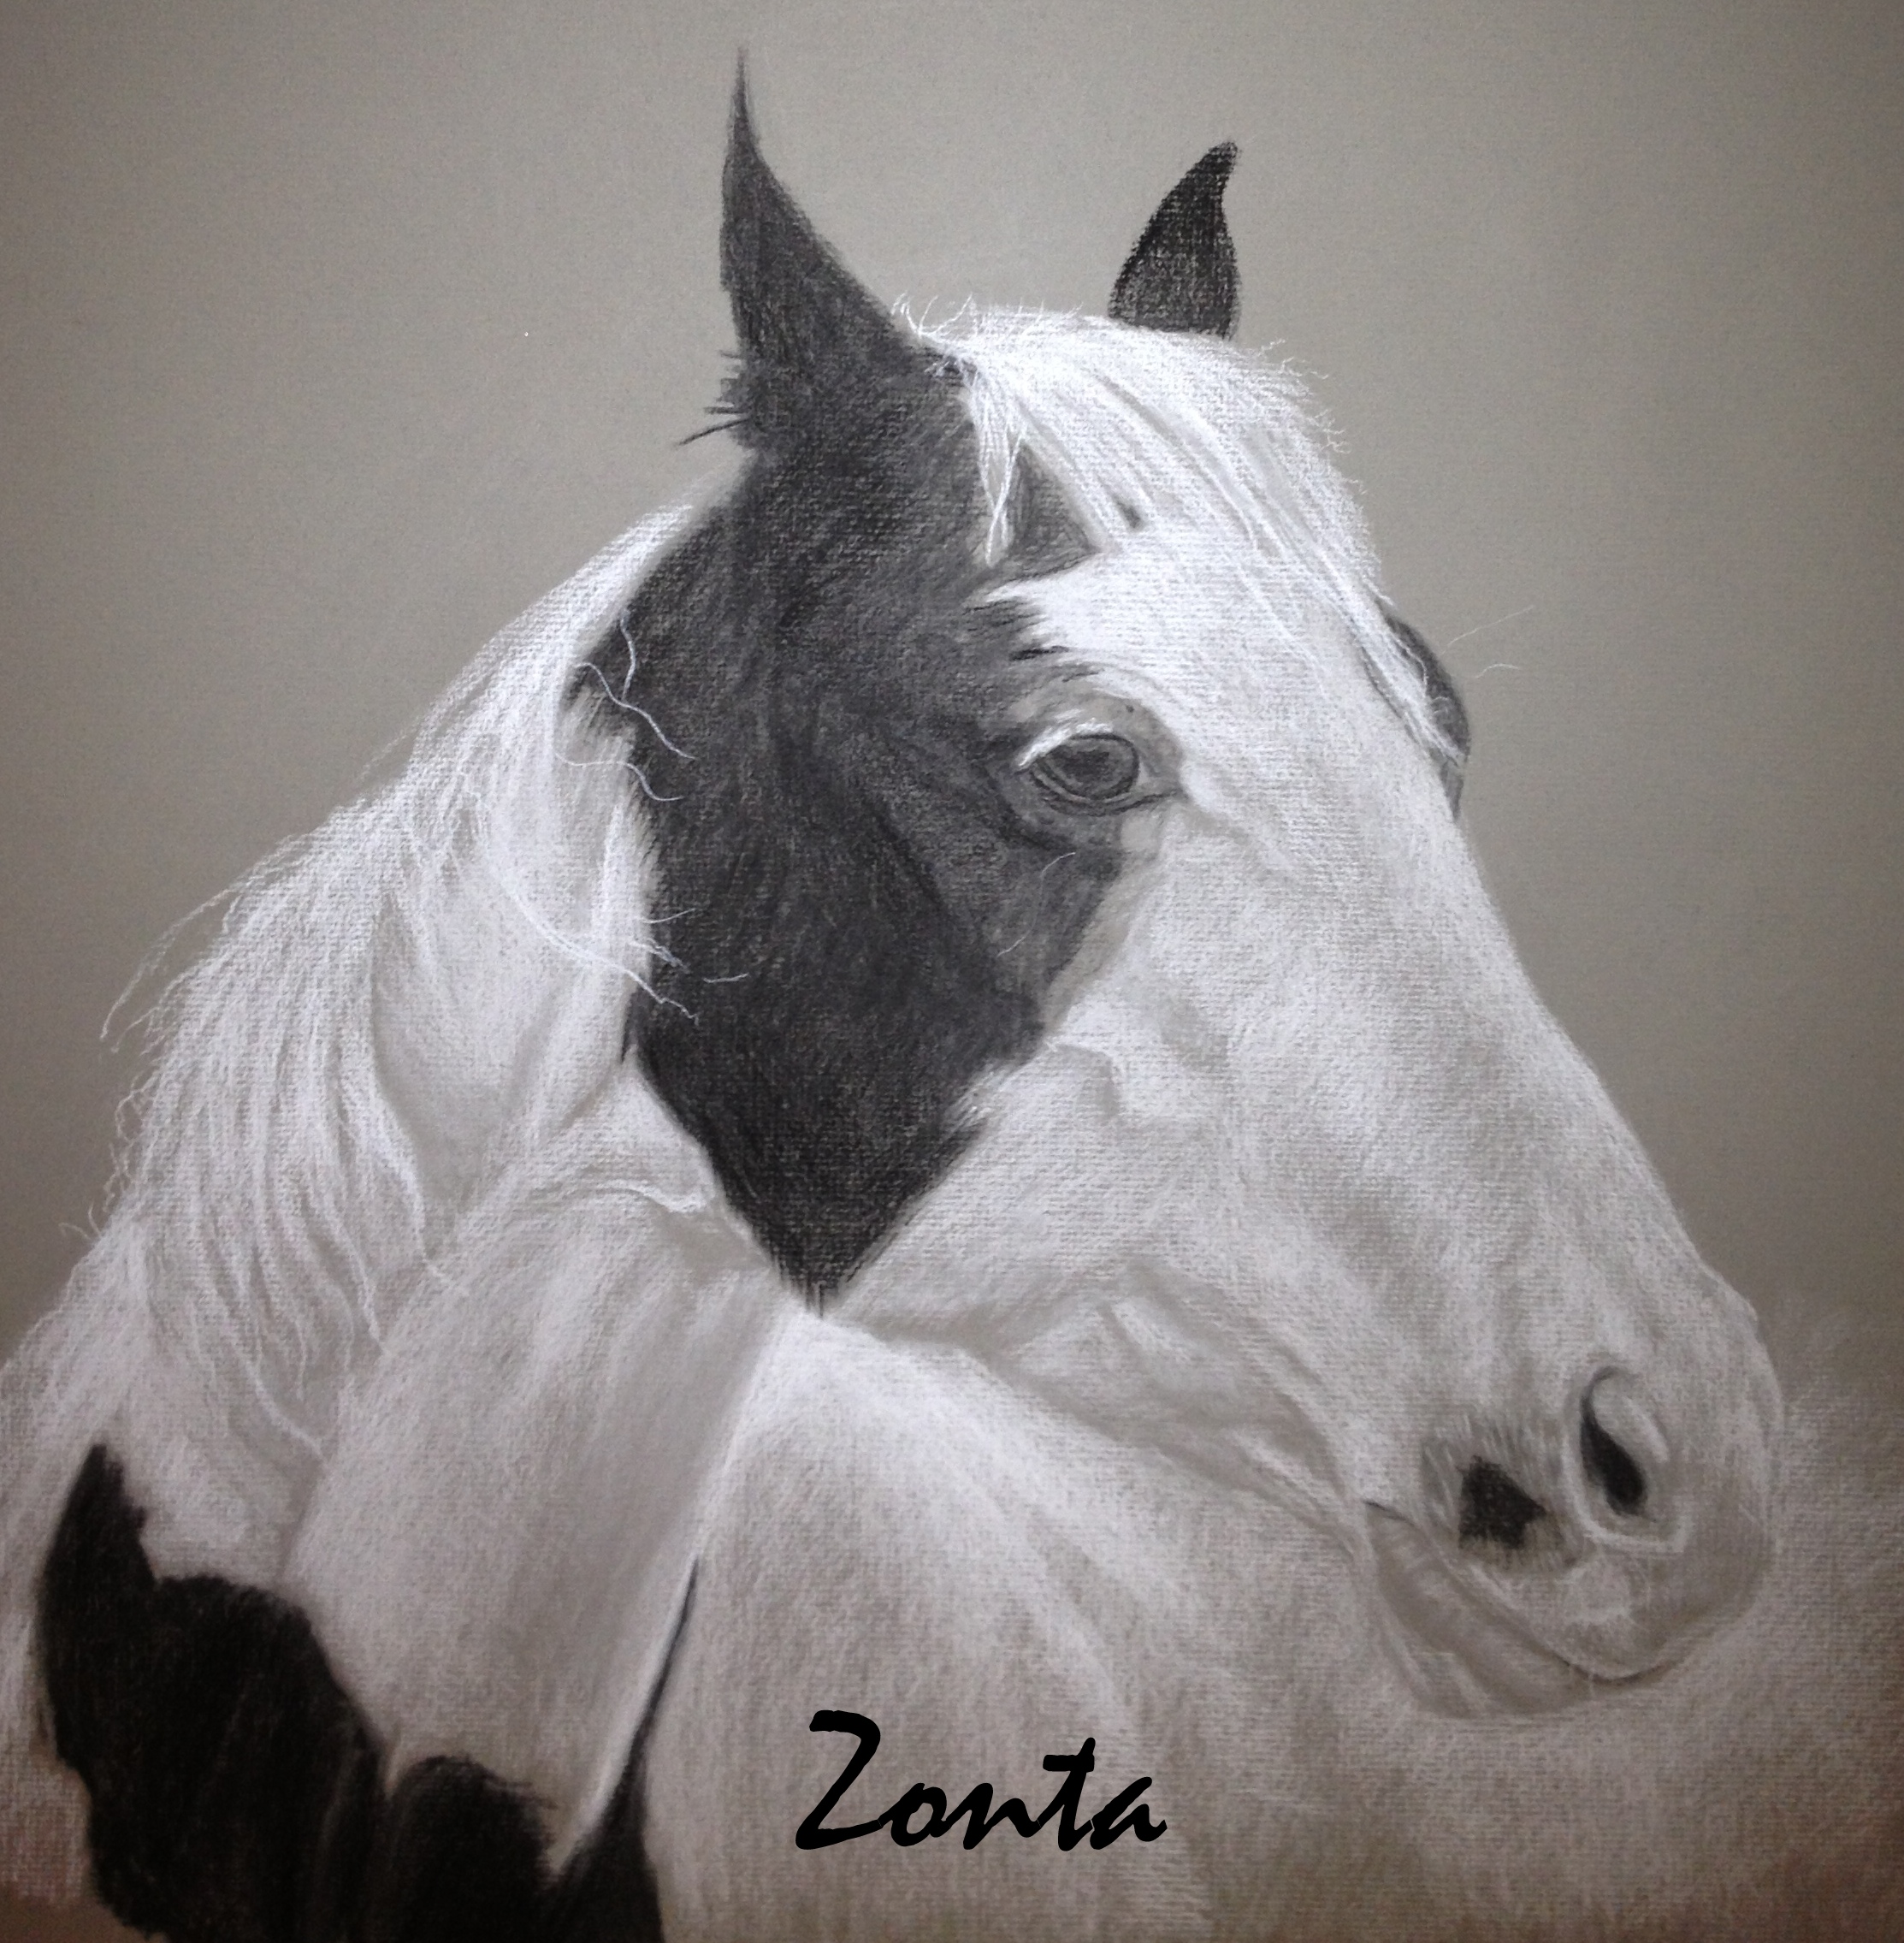 zonta-with-writing.jpg